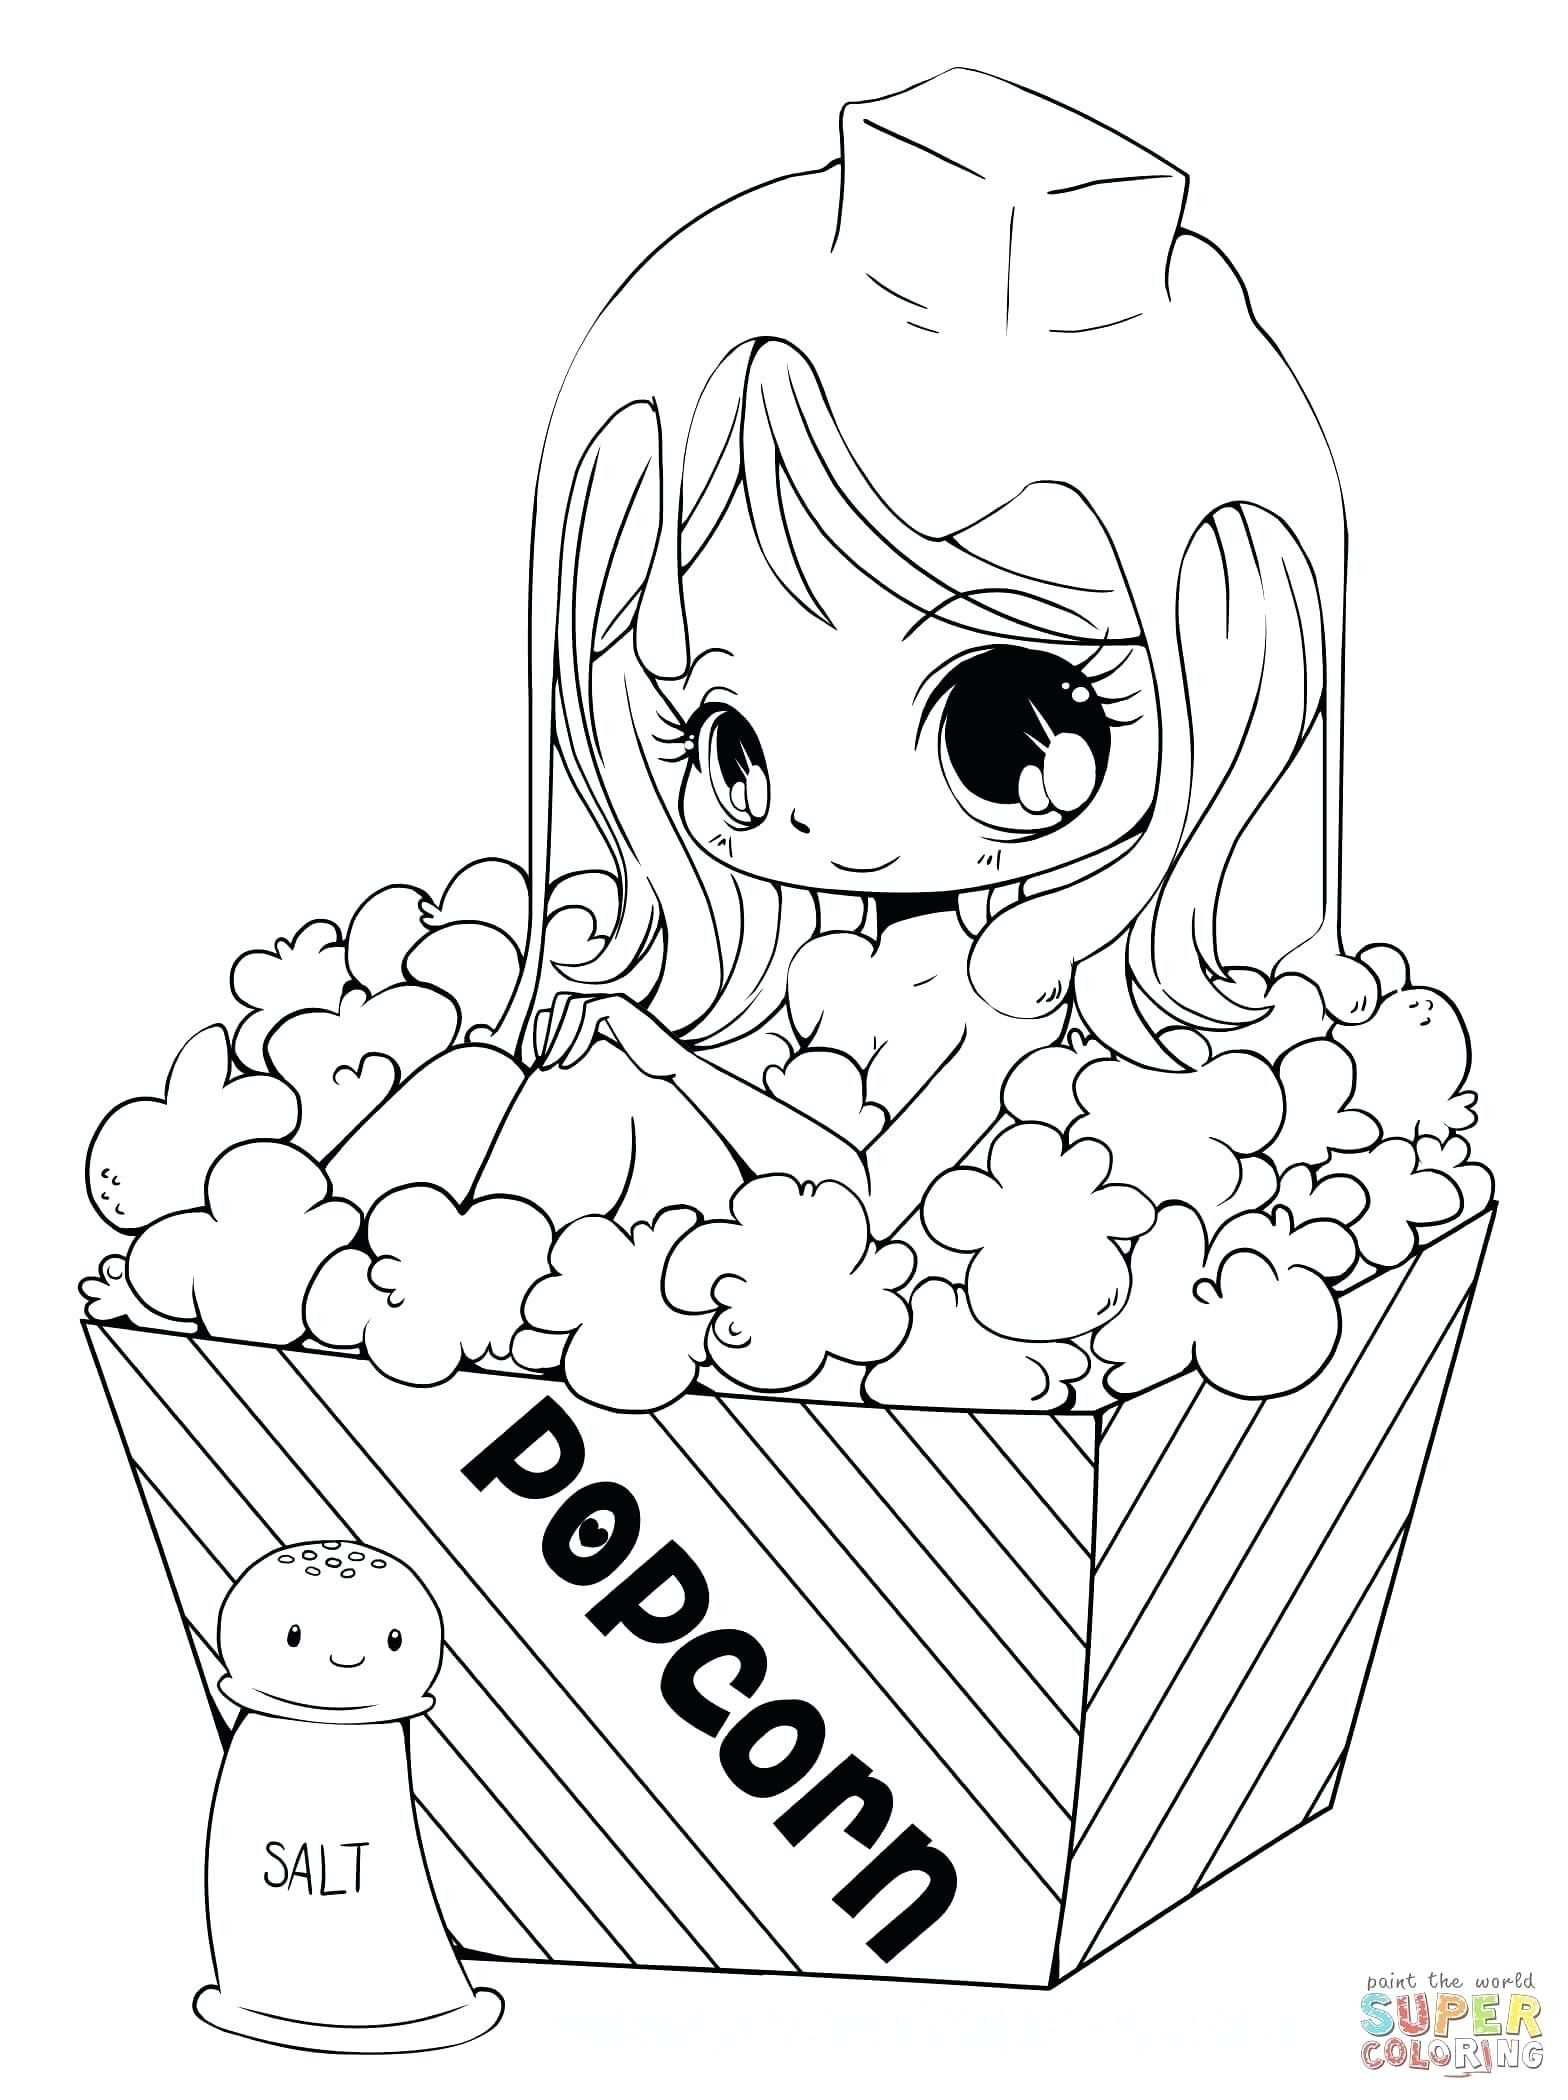 Candy Corn Coloring Page Fresh Candy Bar Coloring Sheet Turnkeyprint Chibi Coloring Pages Princess Coloring Pages Witch Coloring Pages